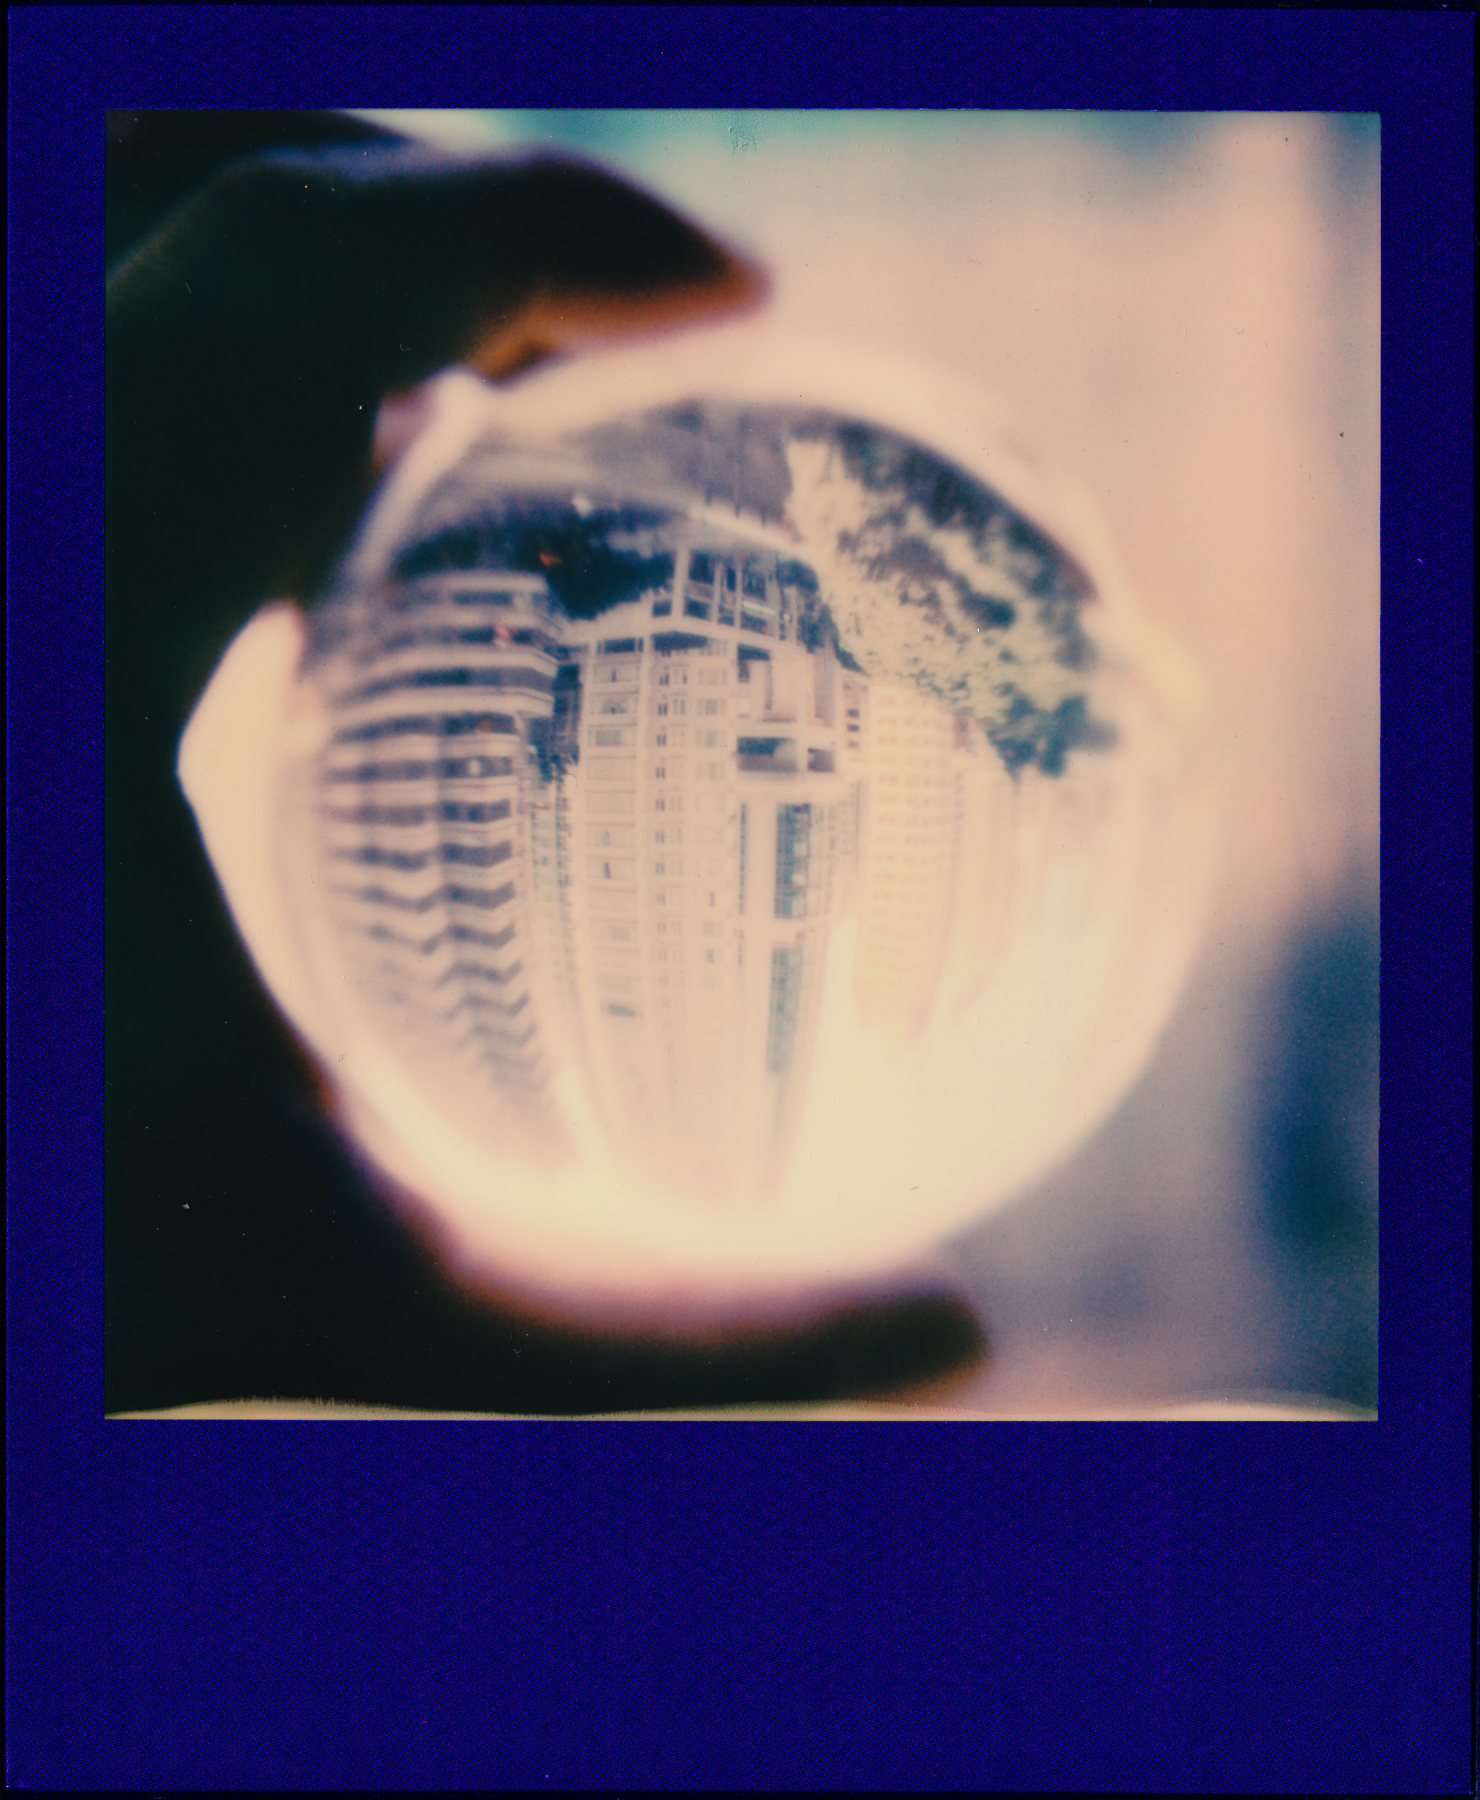 Dreams | SLR670S | Polaroid Originals | Paul Chow